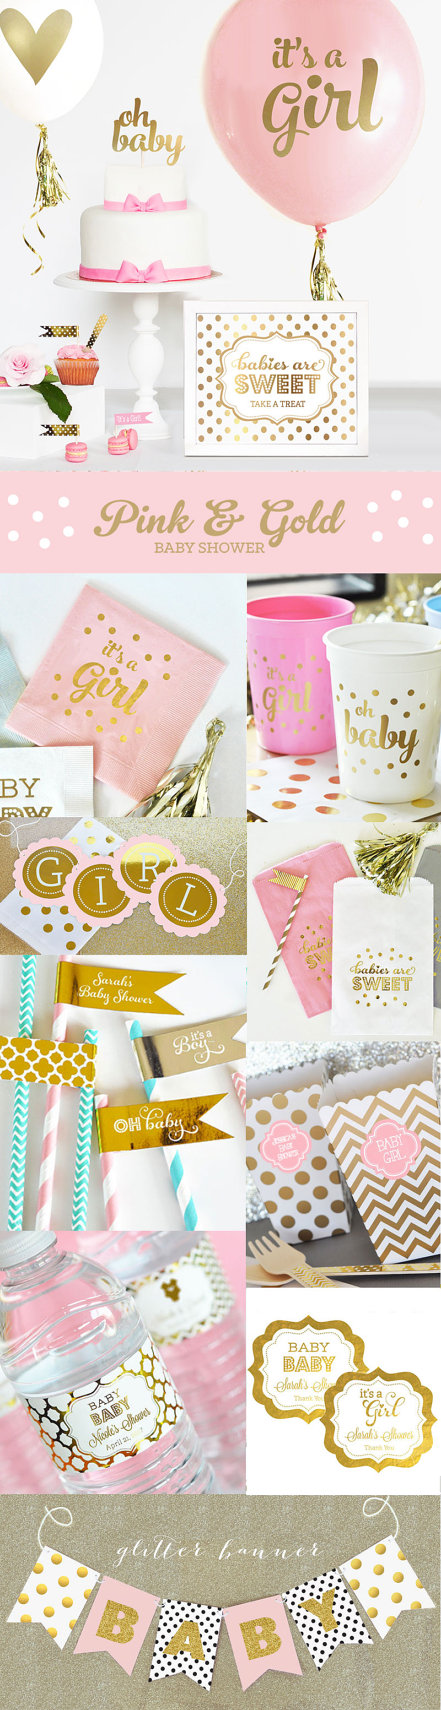 pink and gold baby shower decor unique baby shower ideas gold